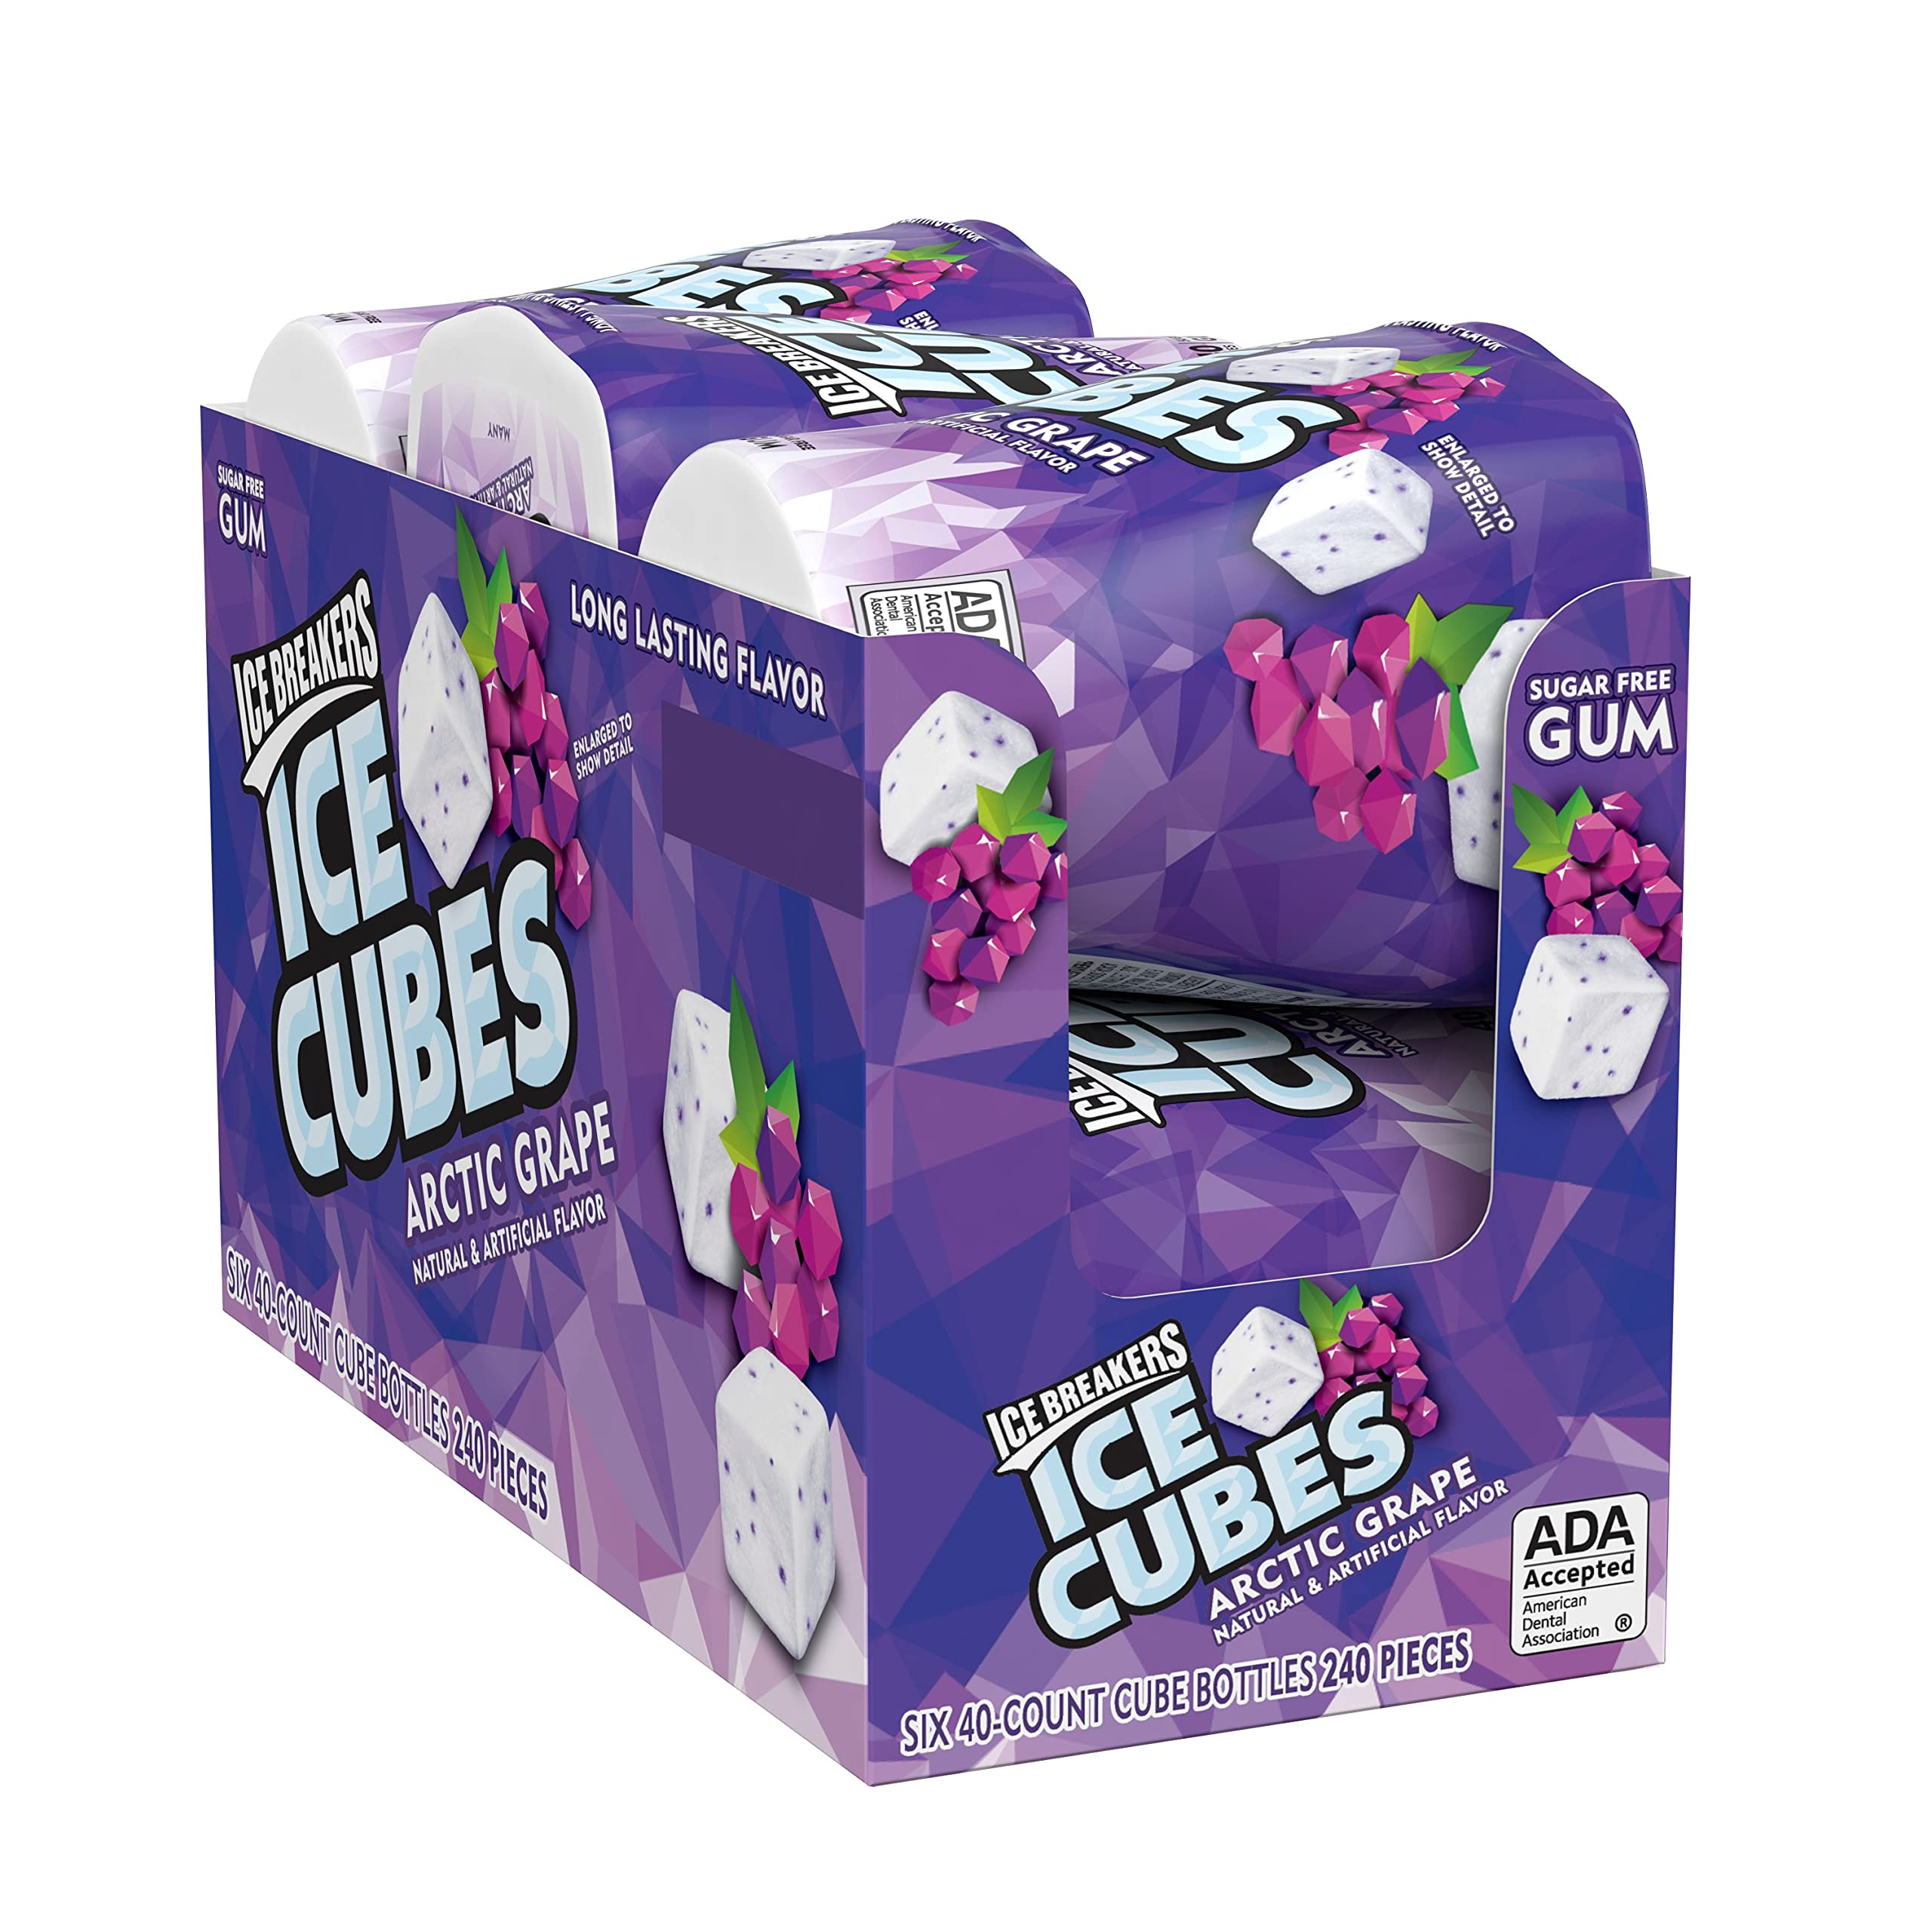 ICE BREAKERS Ice Cubes Sugar Free Gum with Xylitol, Arctic Grape, 40 Count, Pack of 6